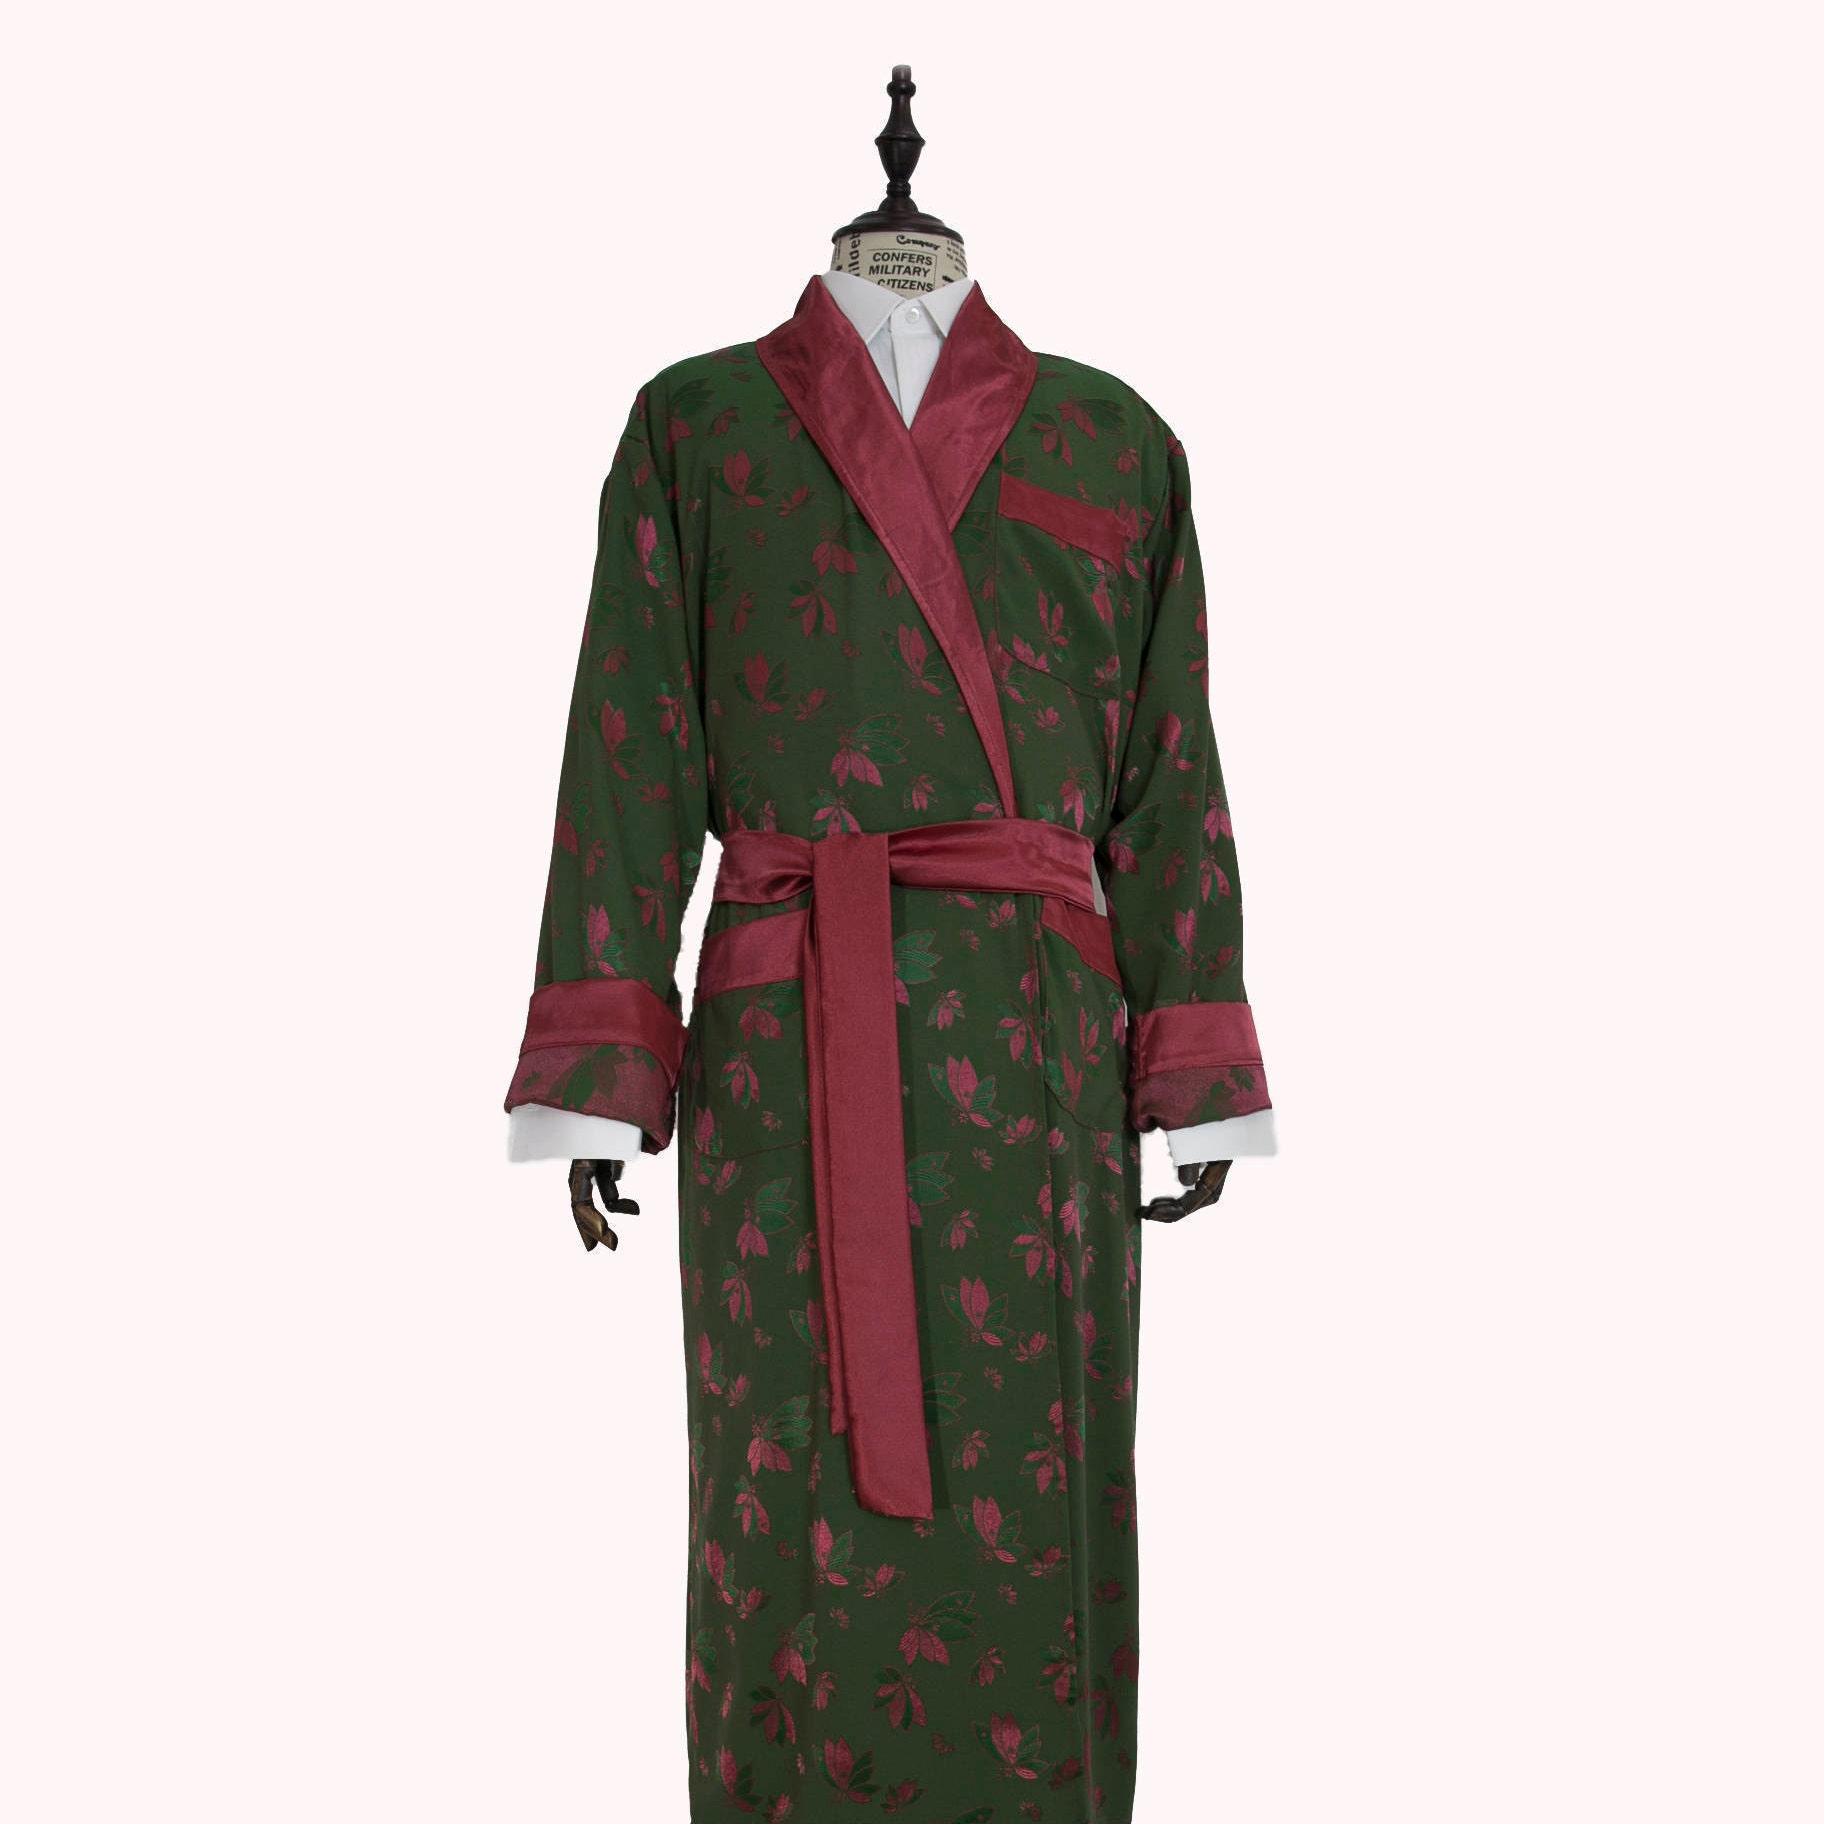 SILK SOFT Dressing Gown, Pajamas & Robe for Men, Night Dress ...